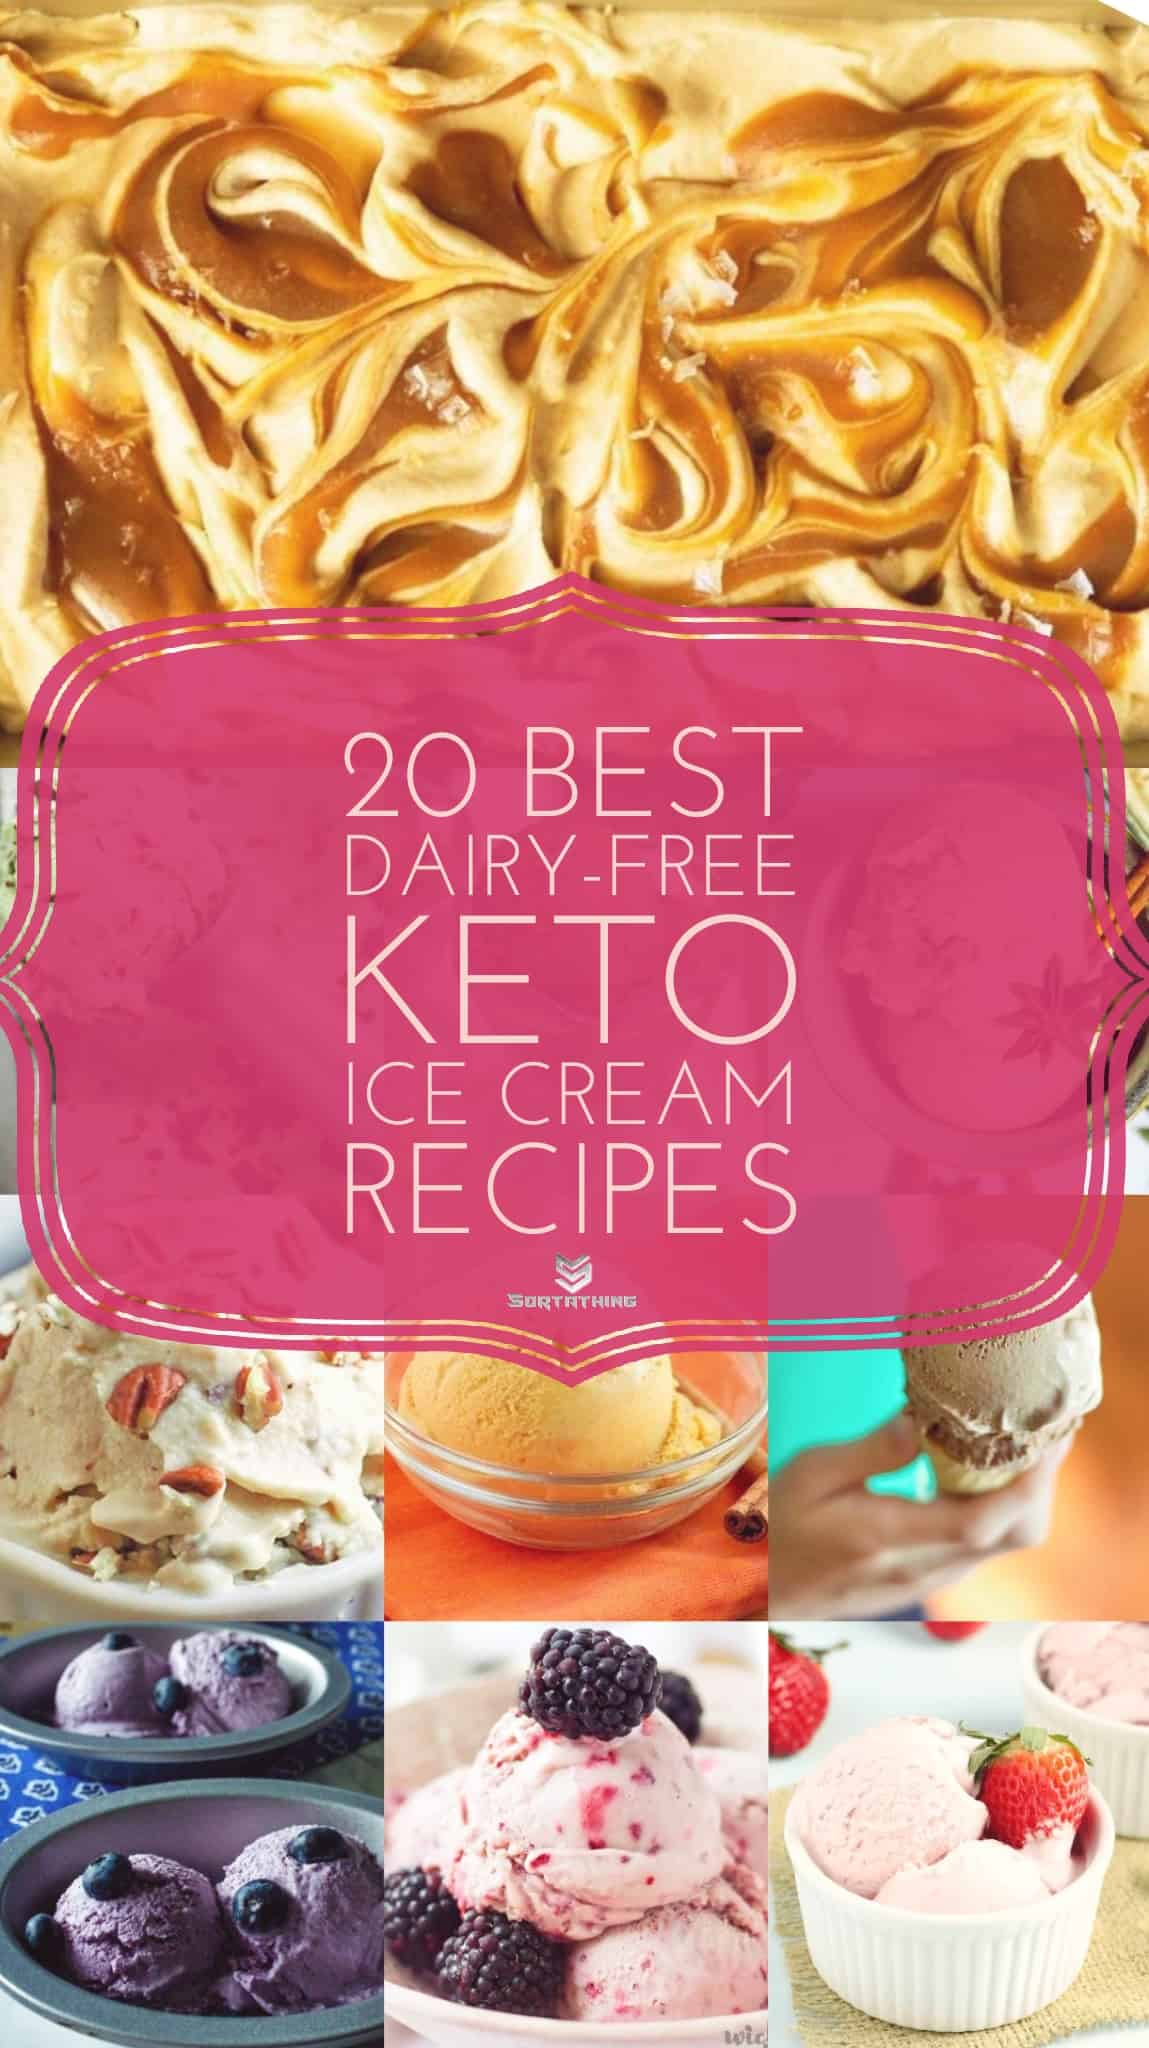 20 Best Keto Dairy Free Ice Cream Recipes - Low Carb Vegan